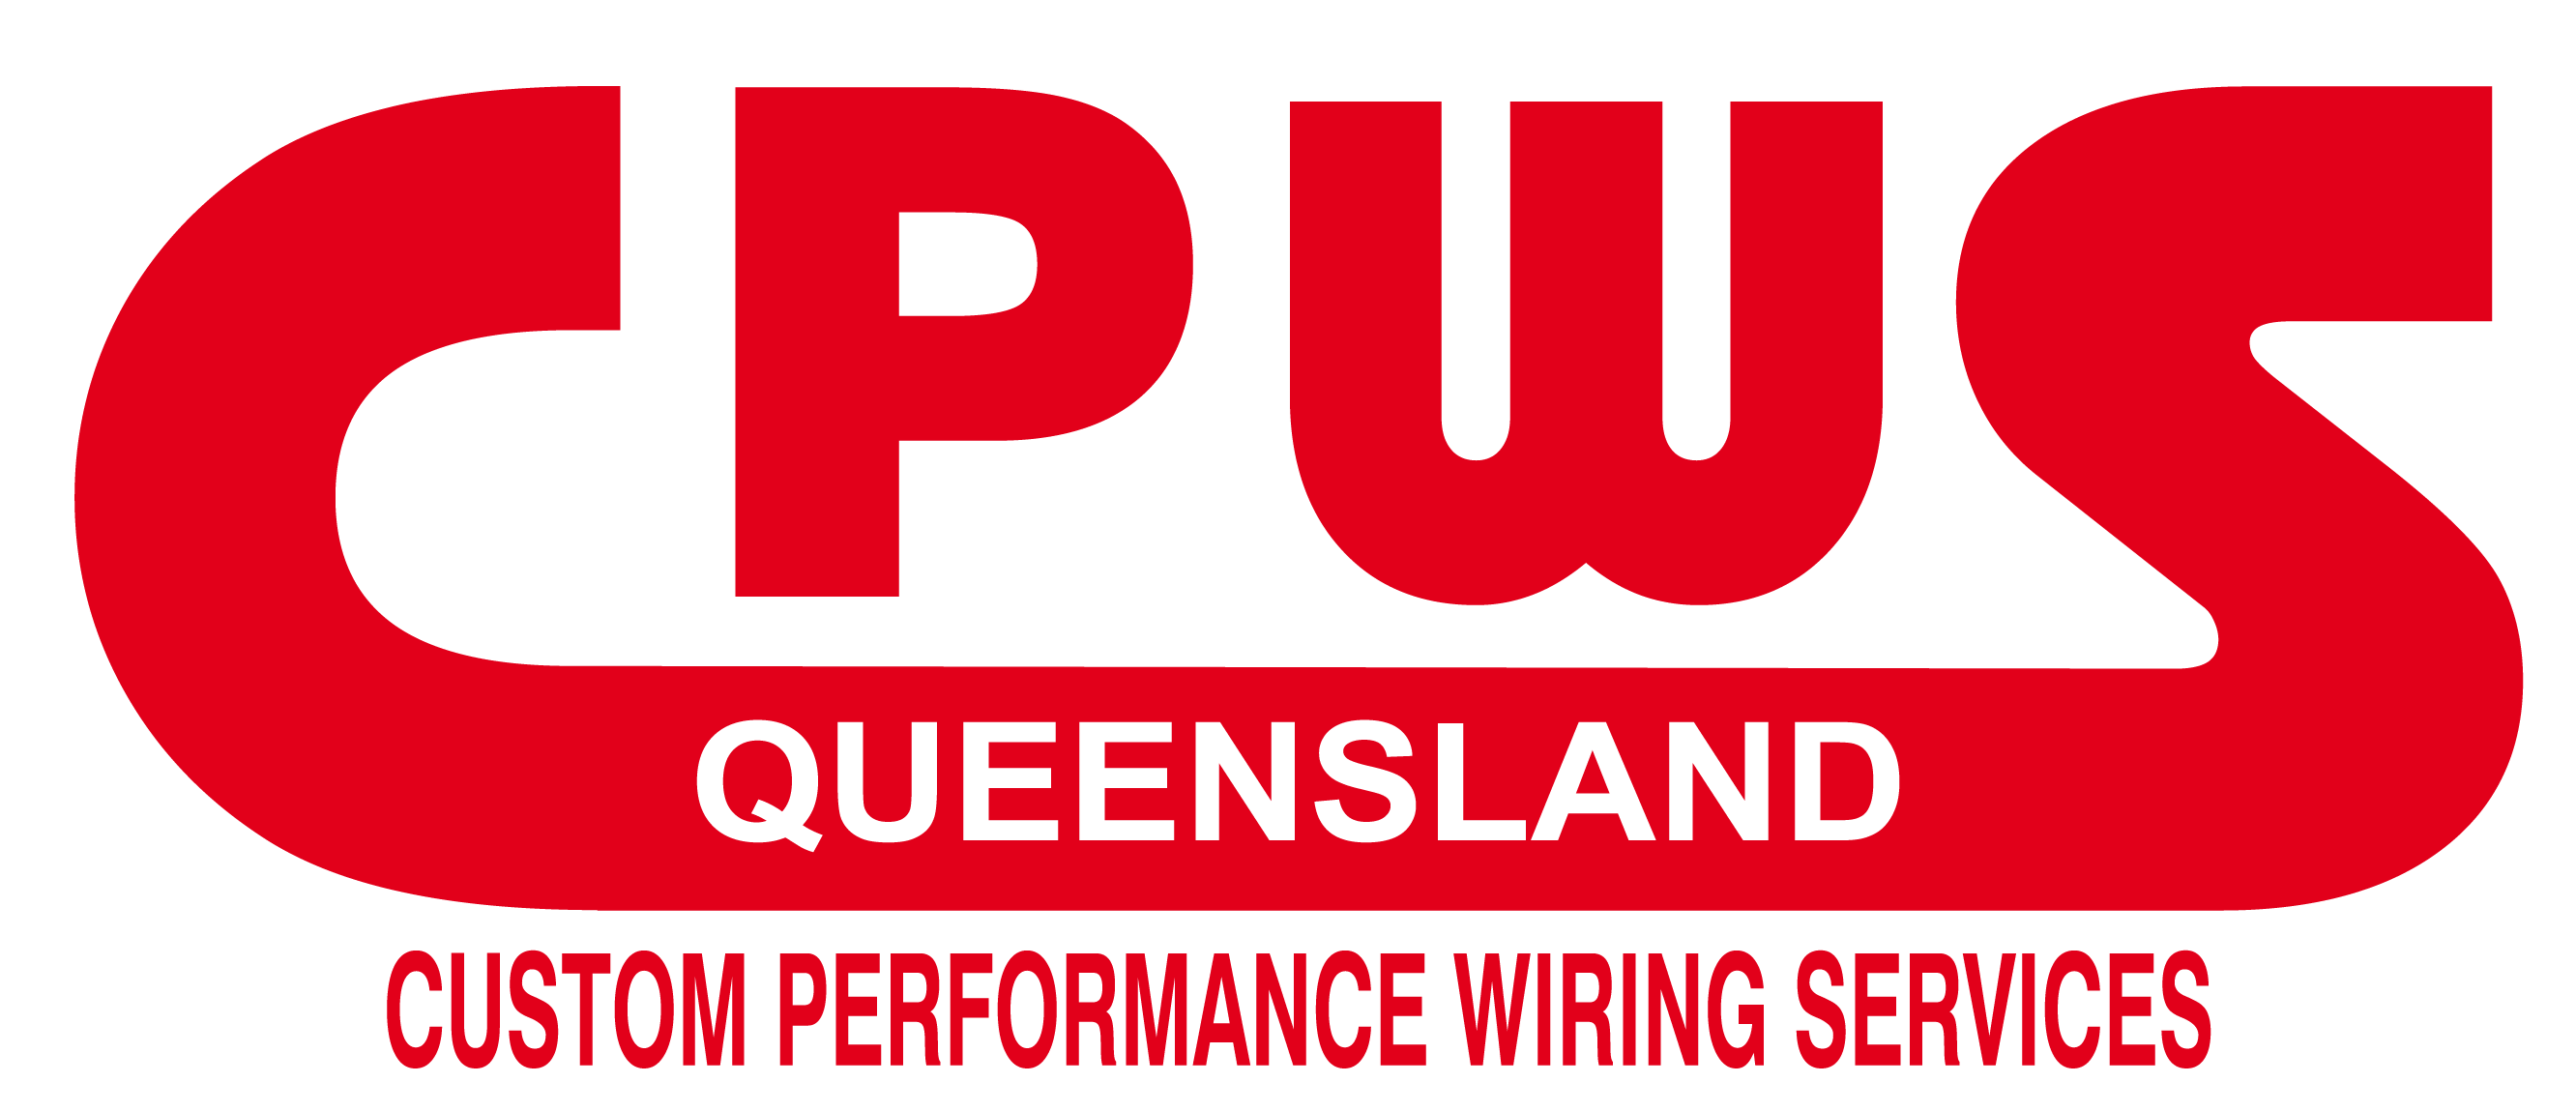 CPWS Queensland